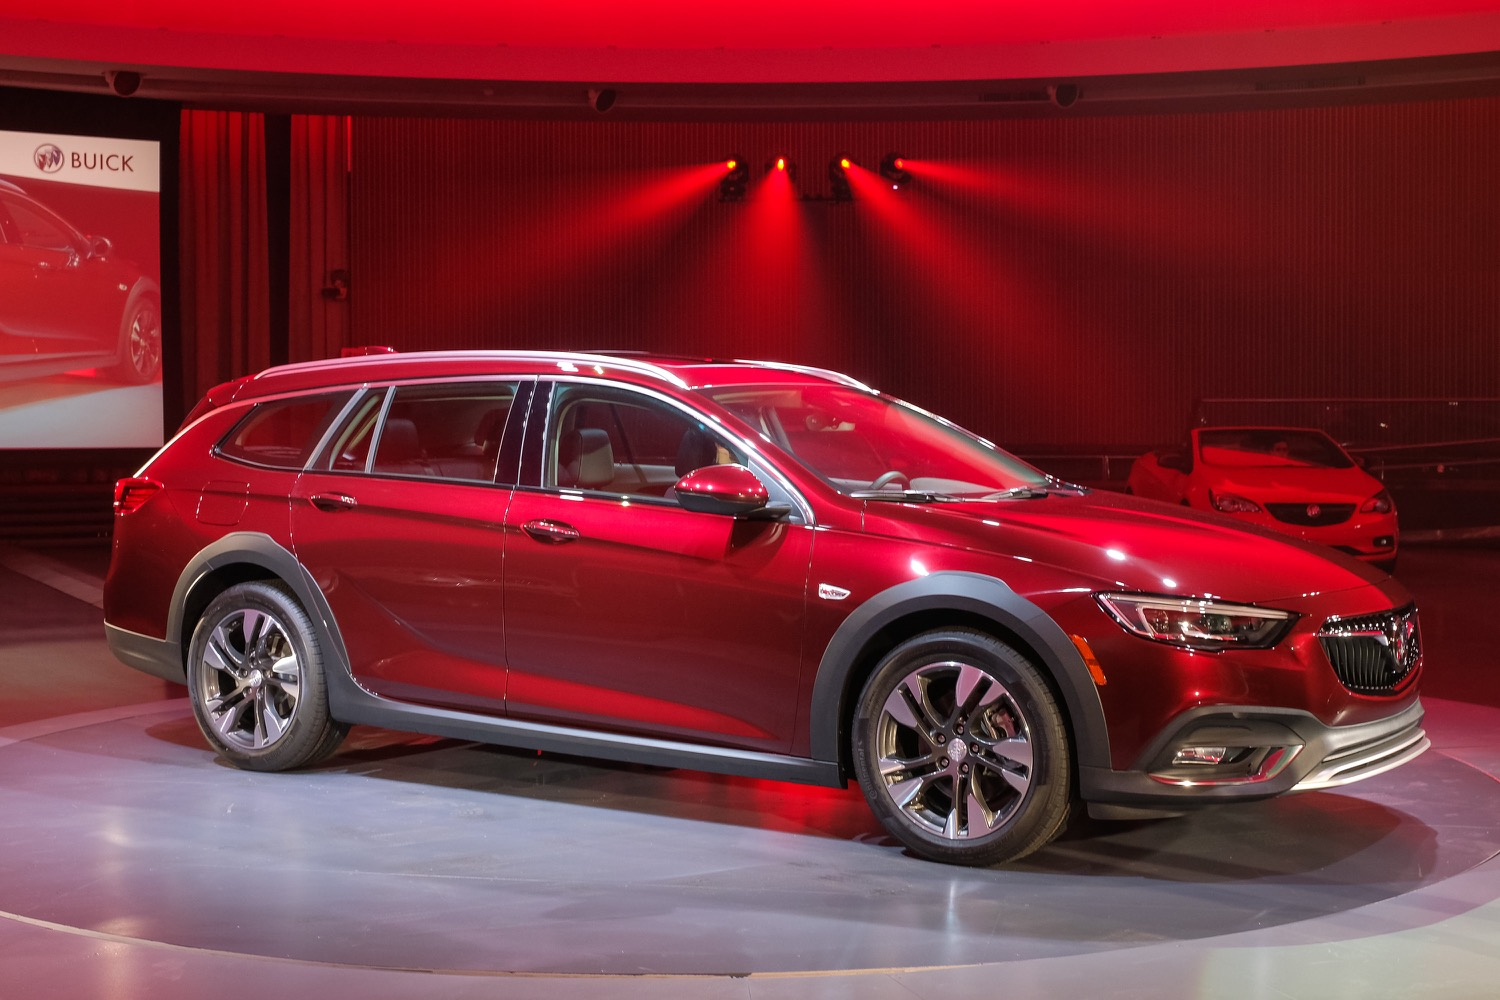 2018 Buick Regal Tourx Wagon | Gm Authority 2022 Buick Regal Tourx Accessories, Changes, Release Date